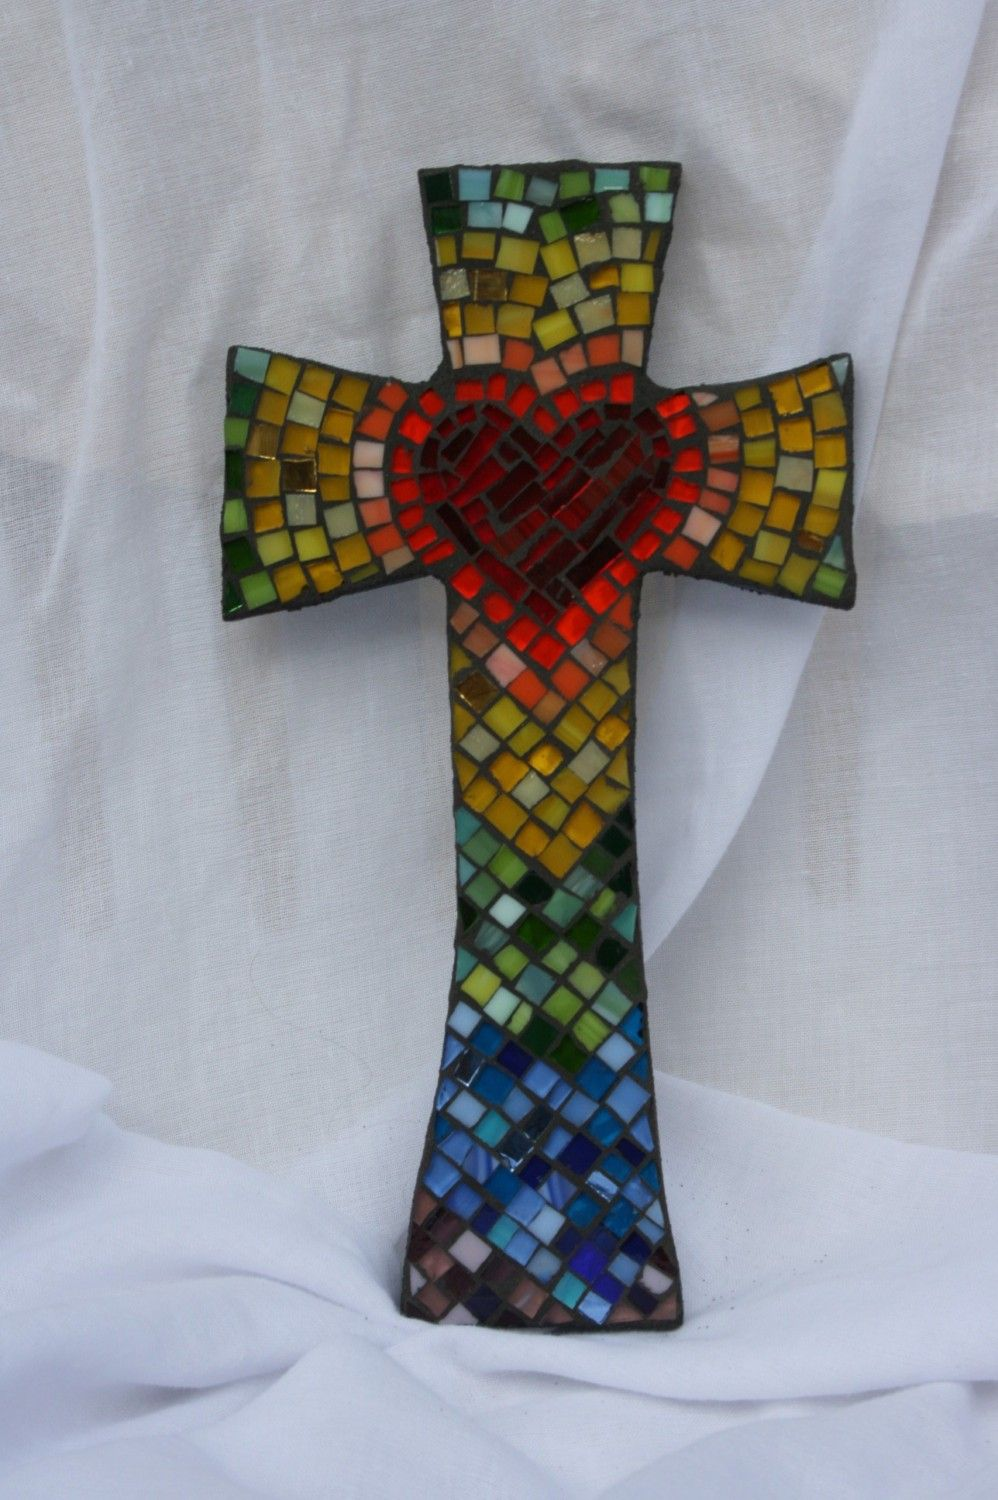 Mosaic Cross With Heart In Center Multicolored Via Etsy